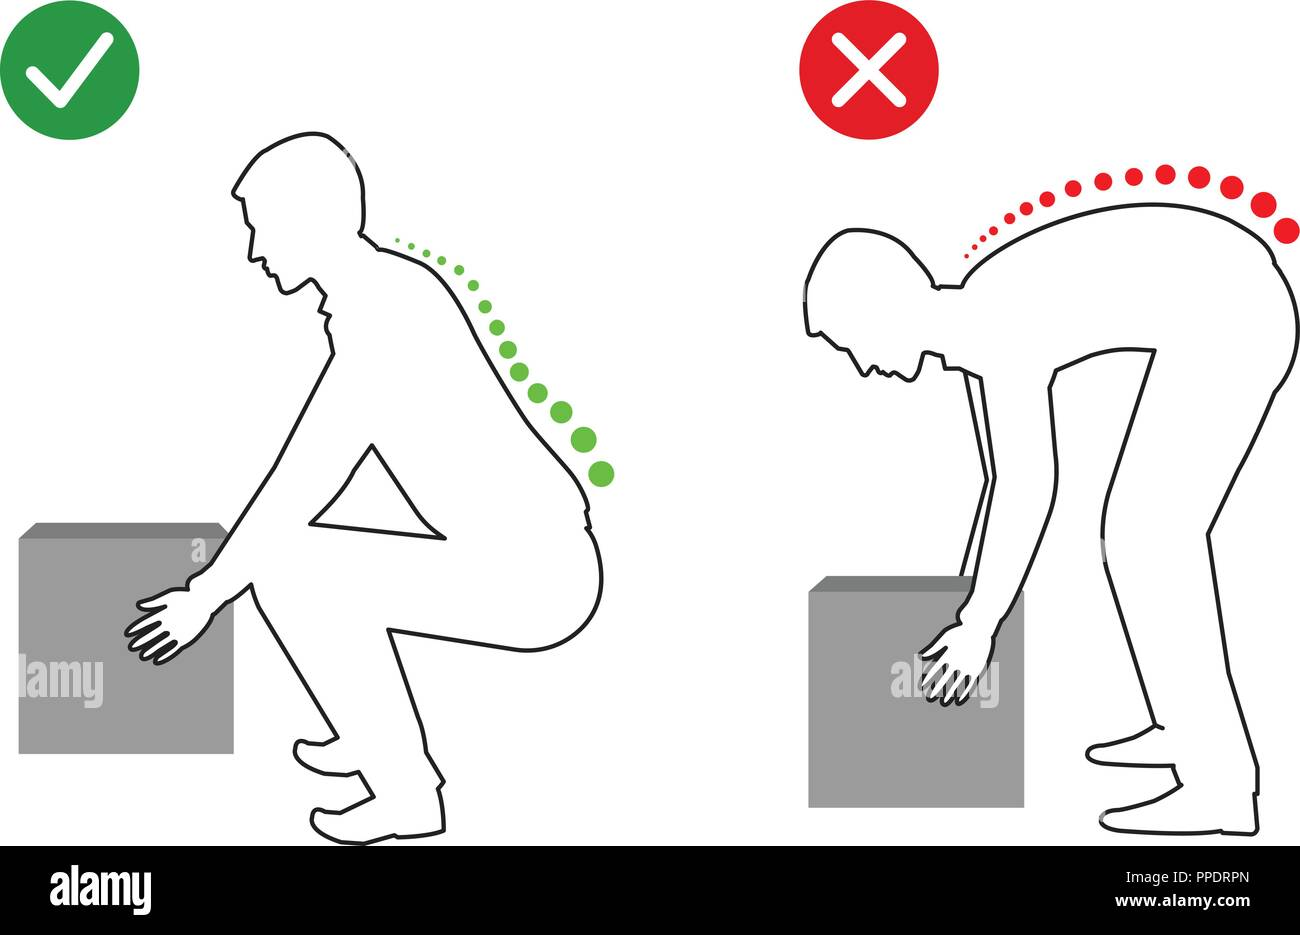 Correct posture to lift a heavy object, Men lifting object - Stock Image